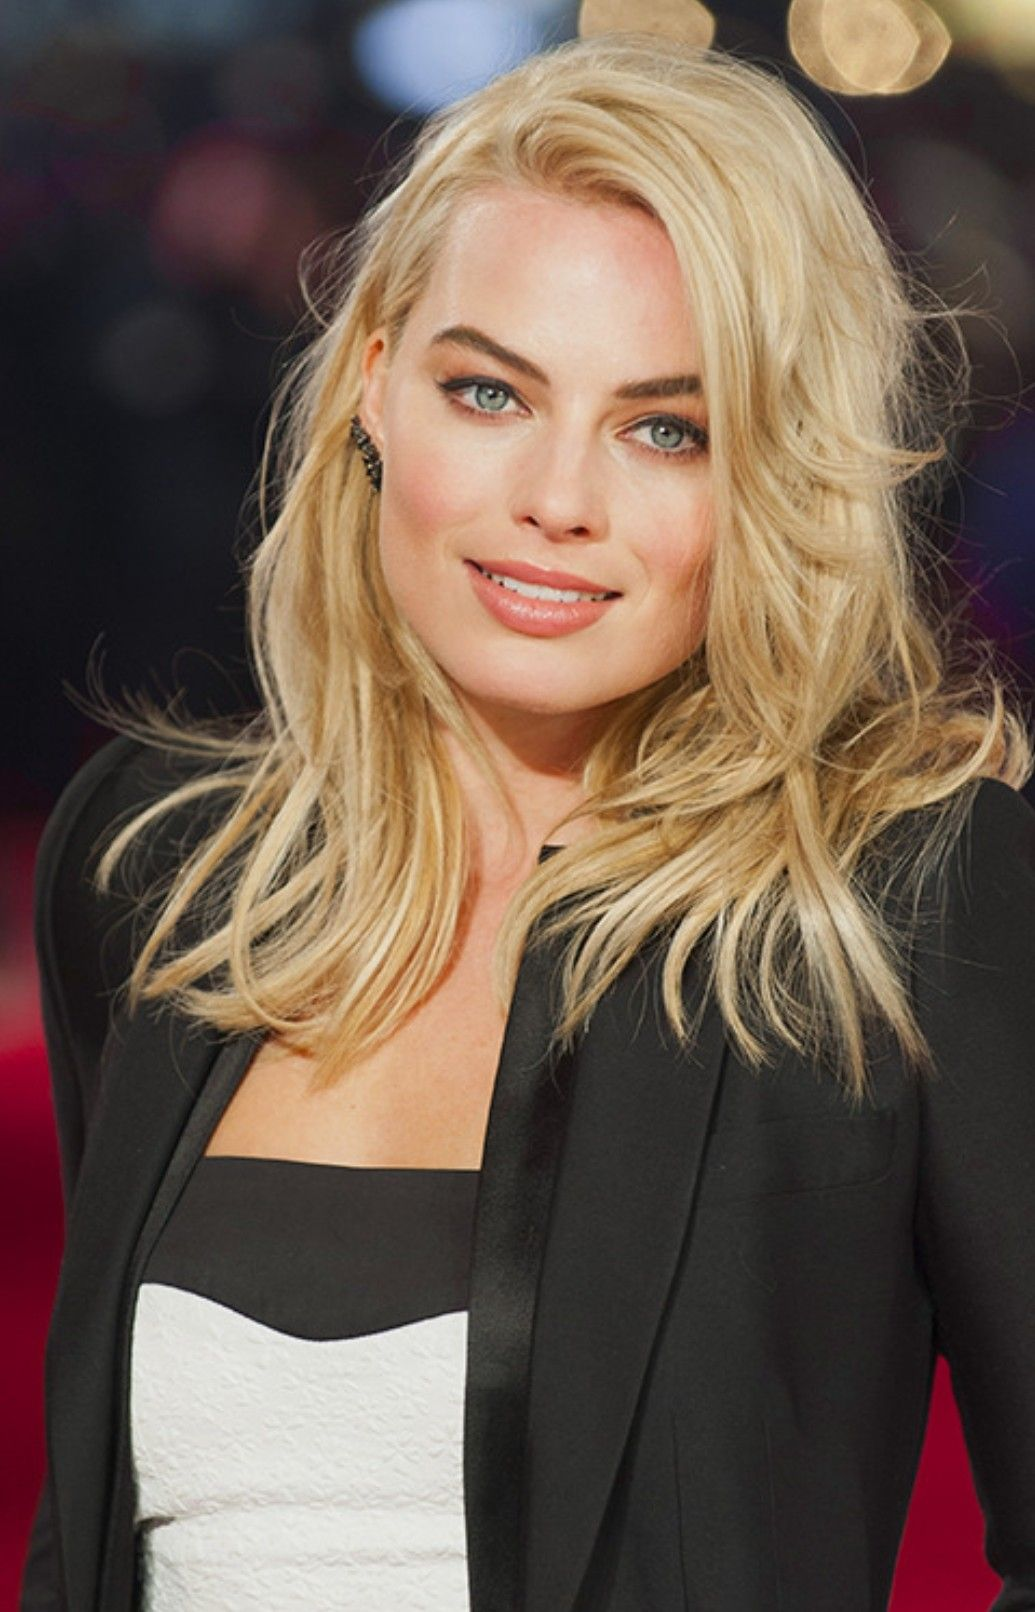 Margot Robbie Margot Robbie new photo